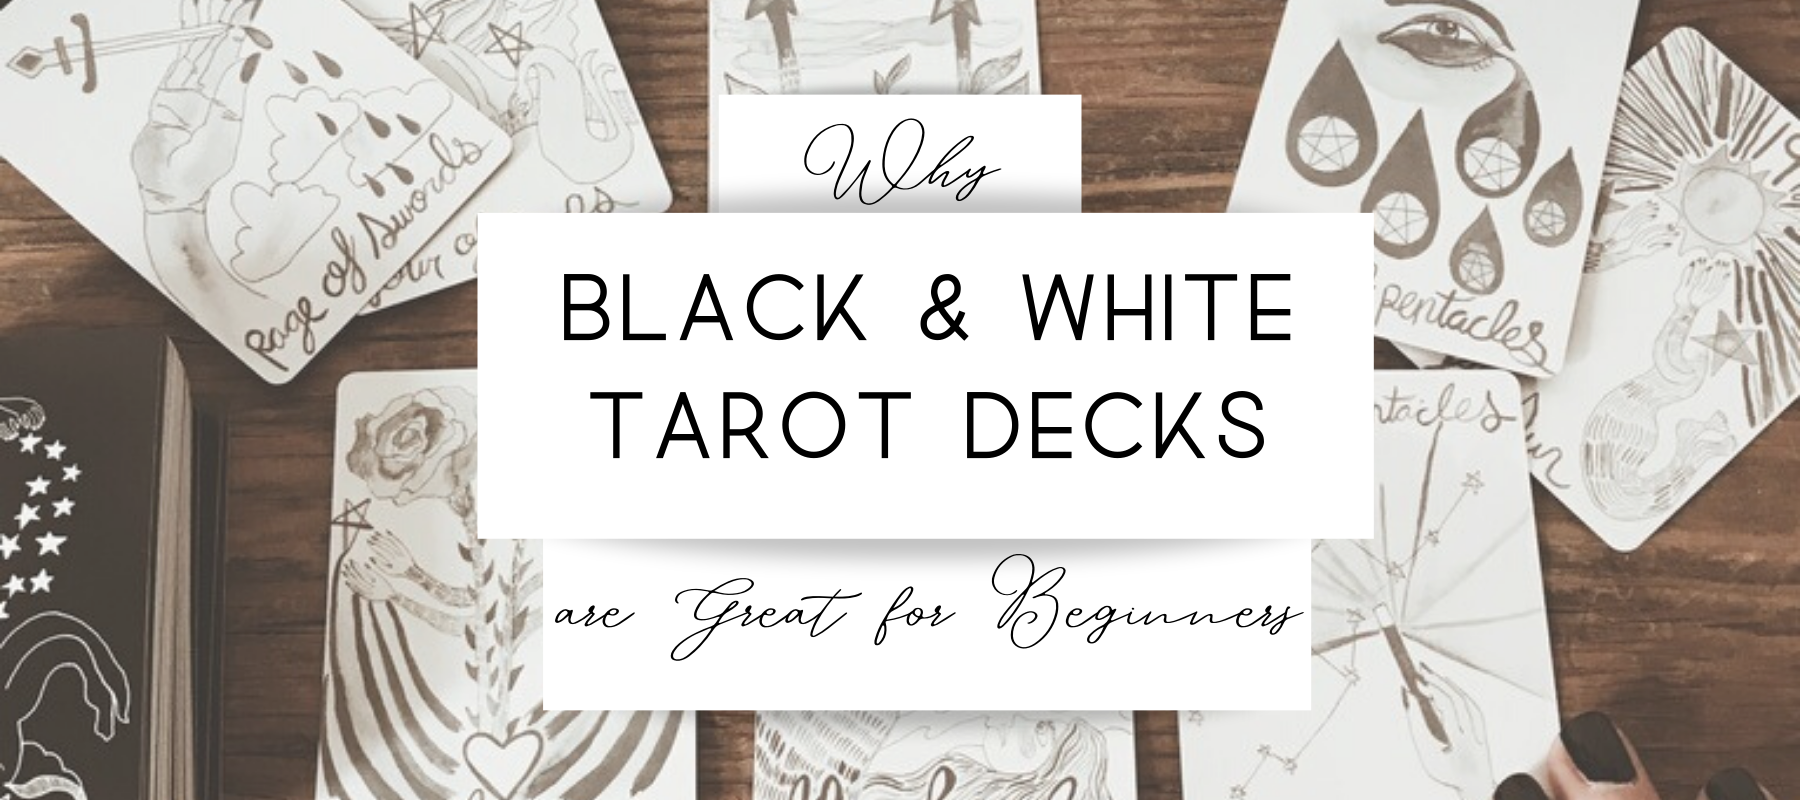 Why Black and White Tarot Decks Are Great for Beginners